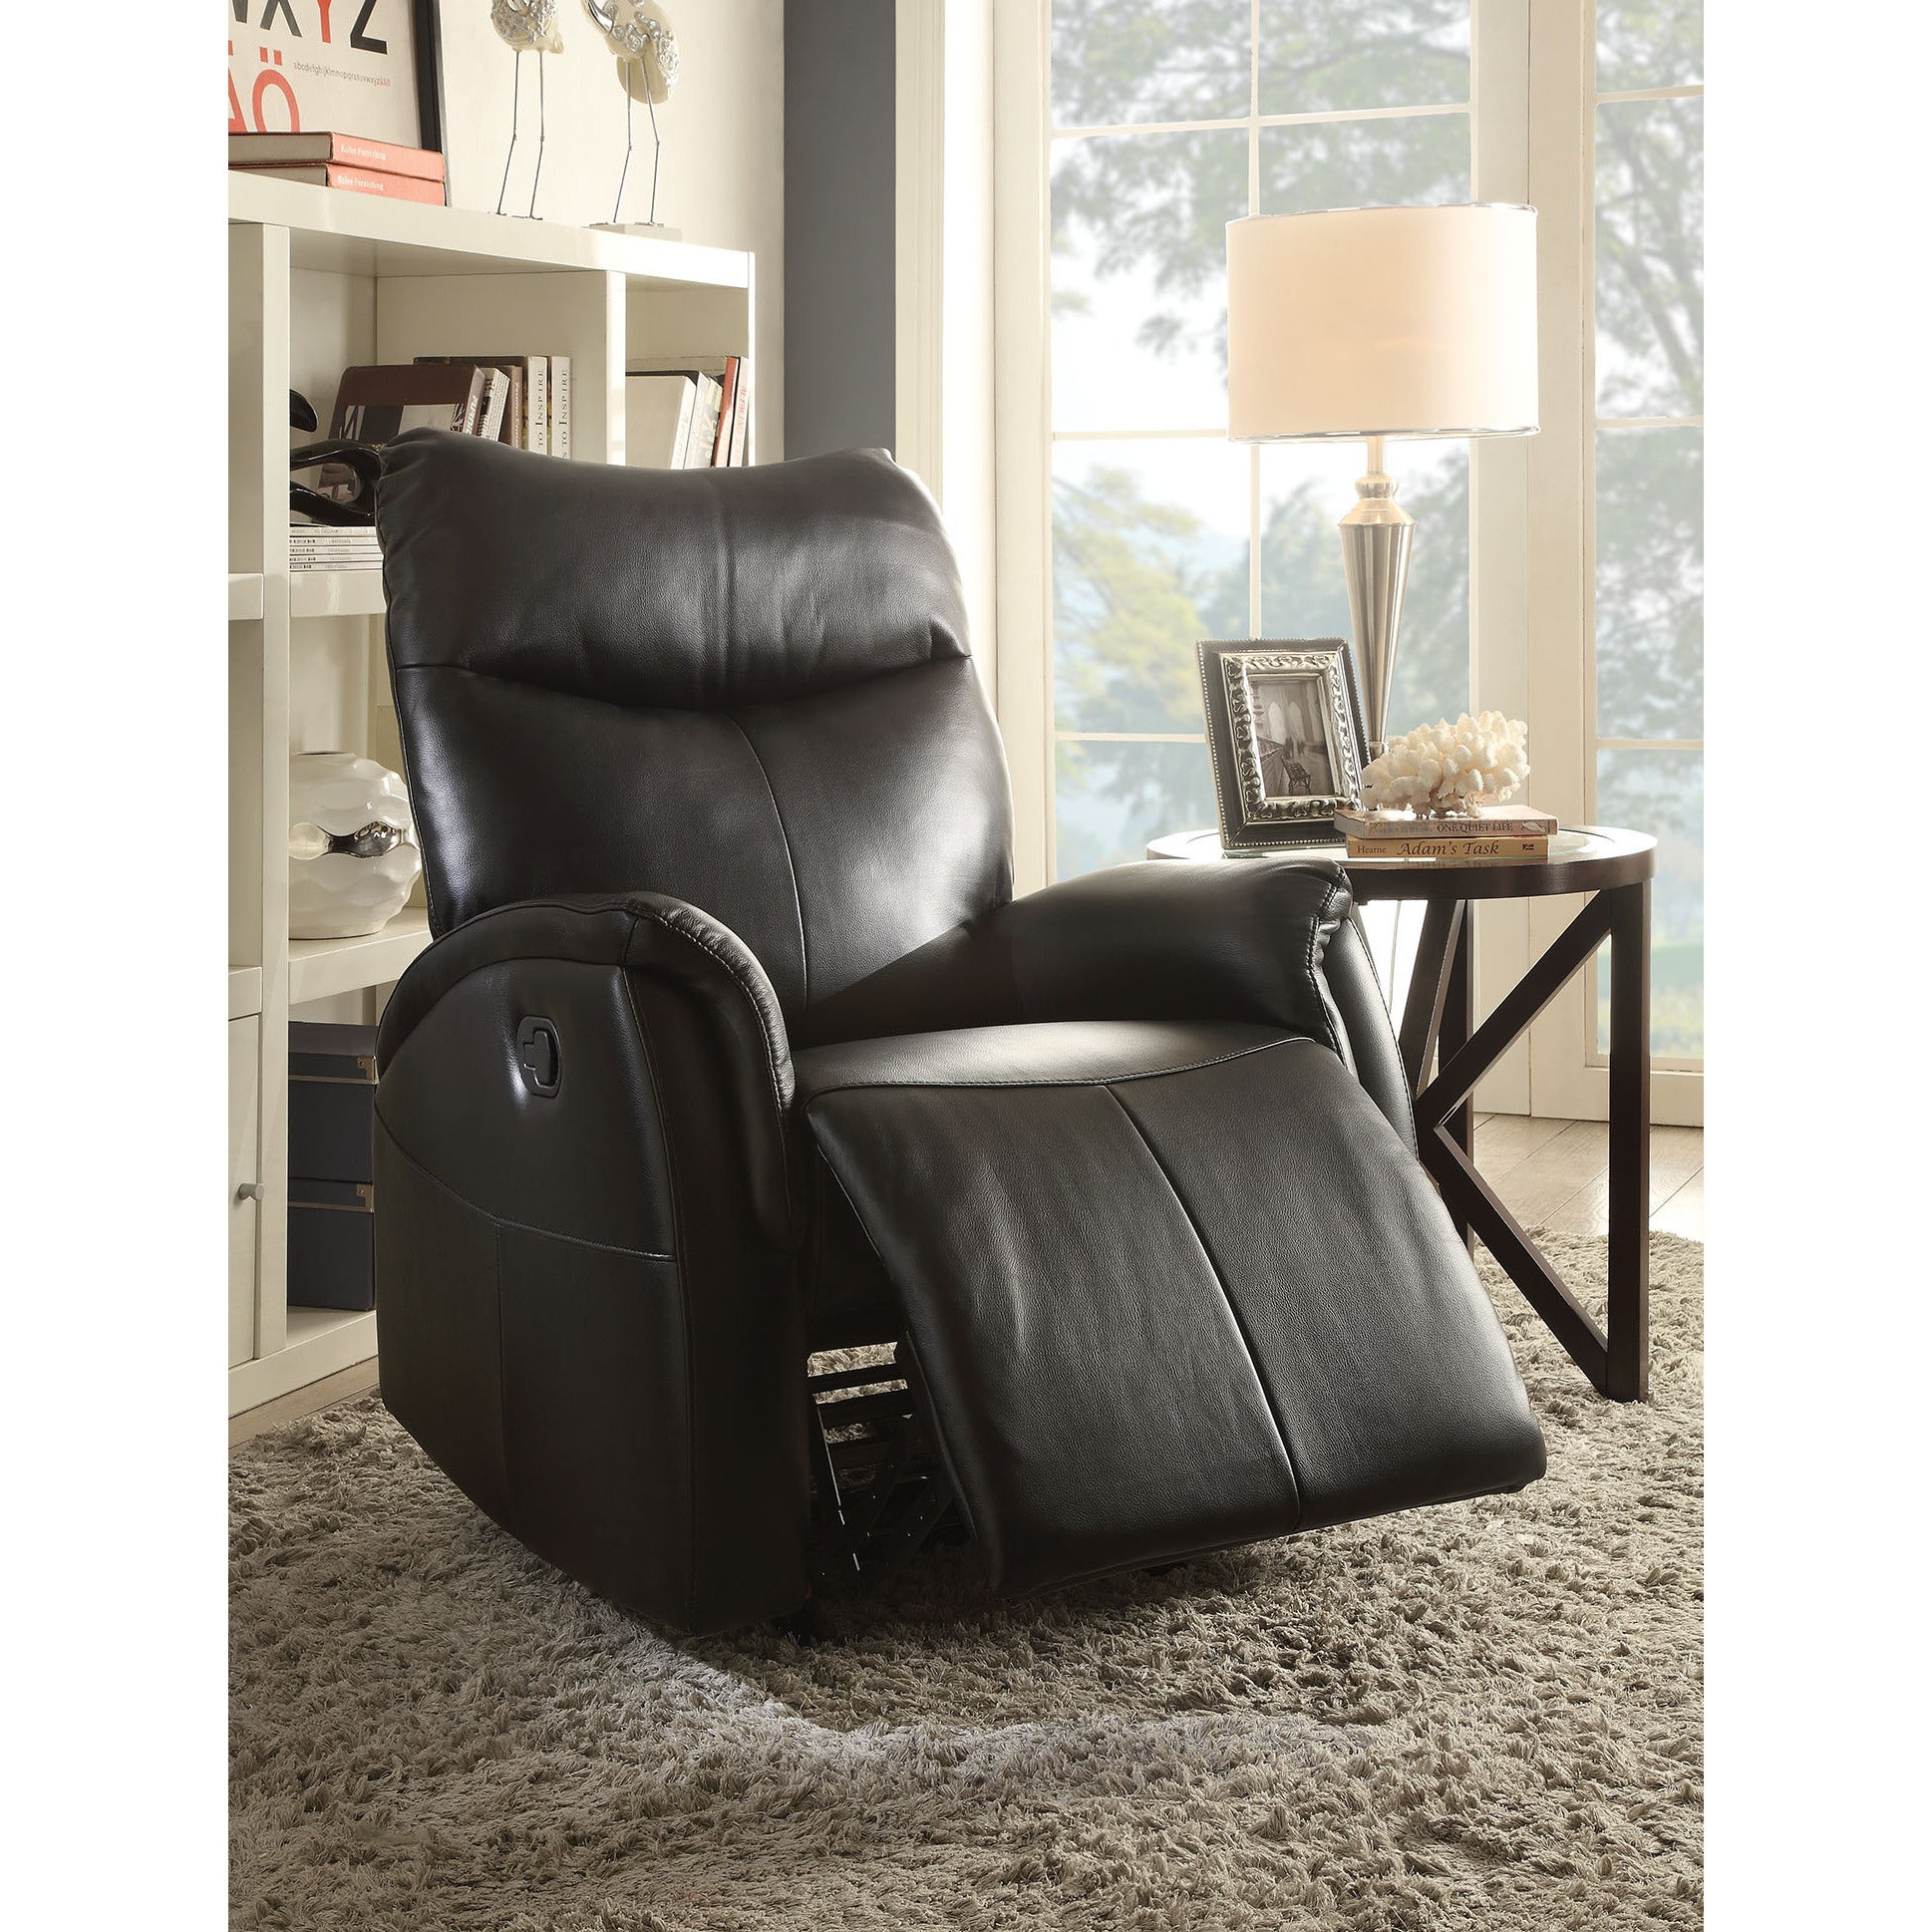 Modern Furniture 2014 Comfort Modern Living Room: Black Leather Recliner Rocker Arm Chair Modern Living Room